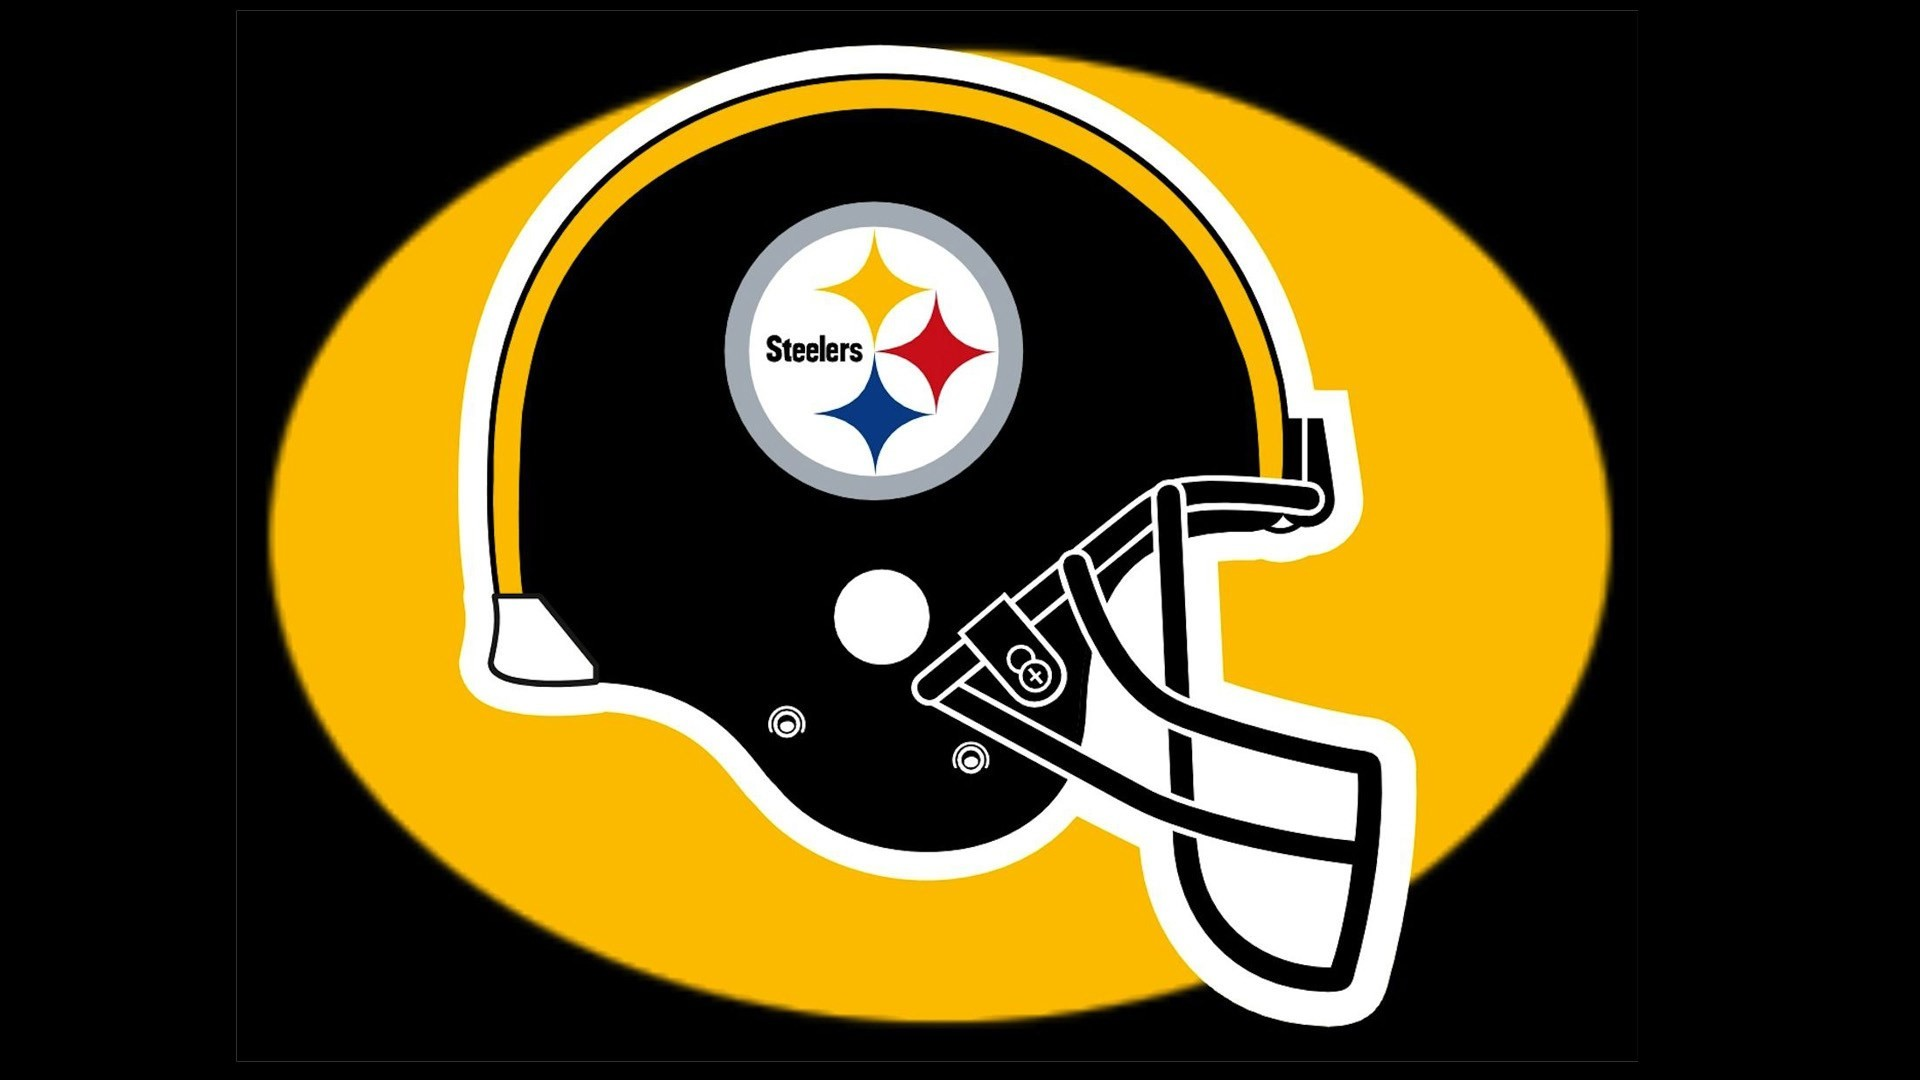 pittsburgh steelers wallpapers 1080p high quality by Hallstein Peacock  (2016-09-13)